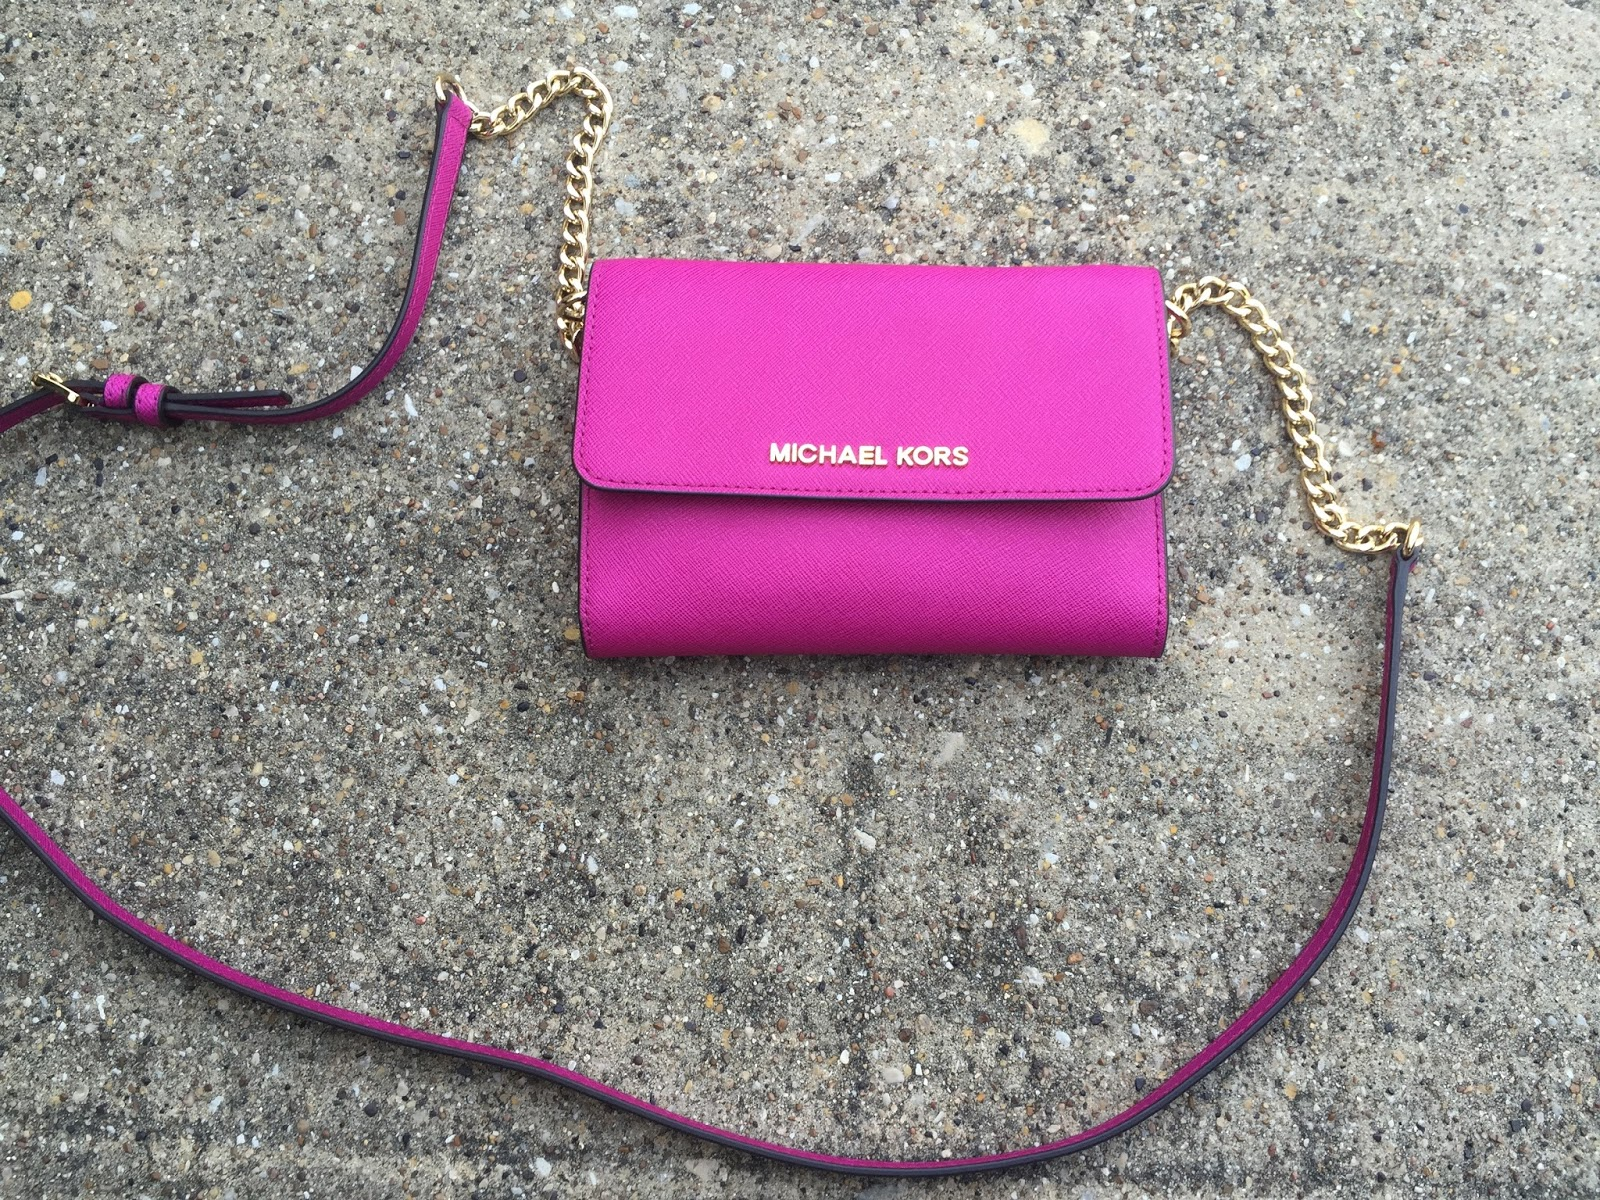 686cd6e1611e93 ... lovely Fuchsia color. Having this bag has rekindled my love for small  compact bags, I'm thinking of buying the MK Cindy large dome cross-body  next :)